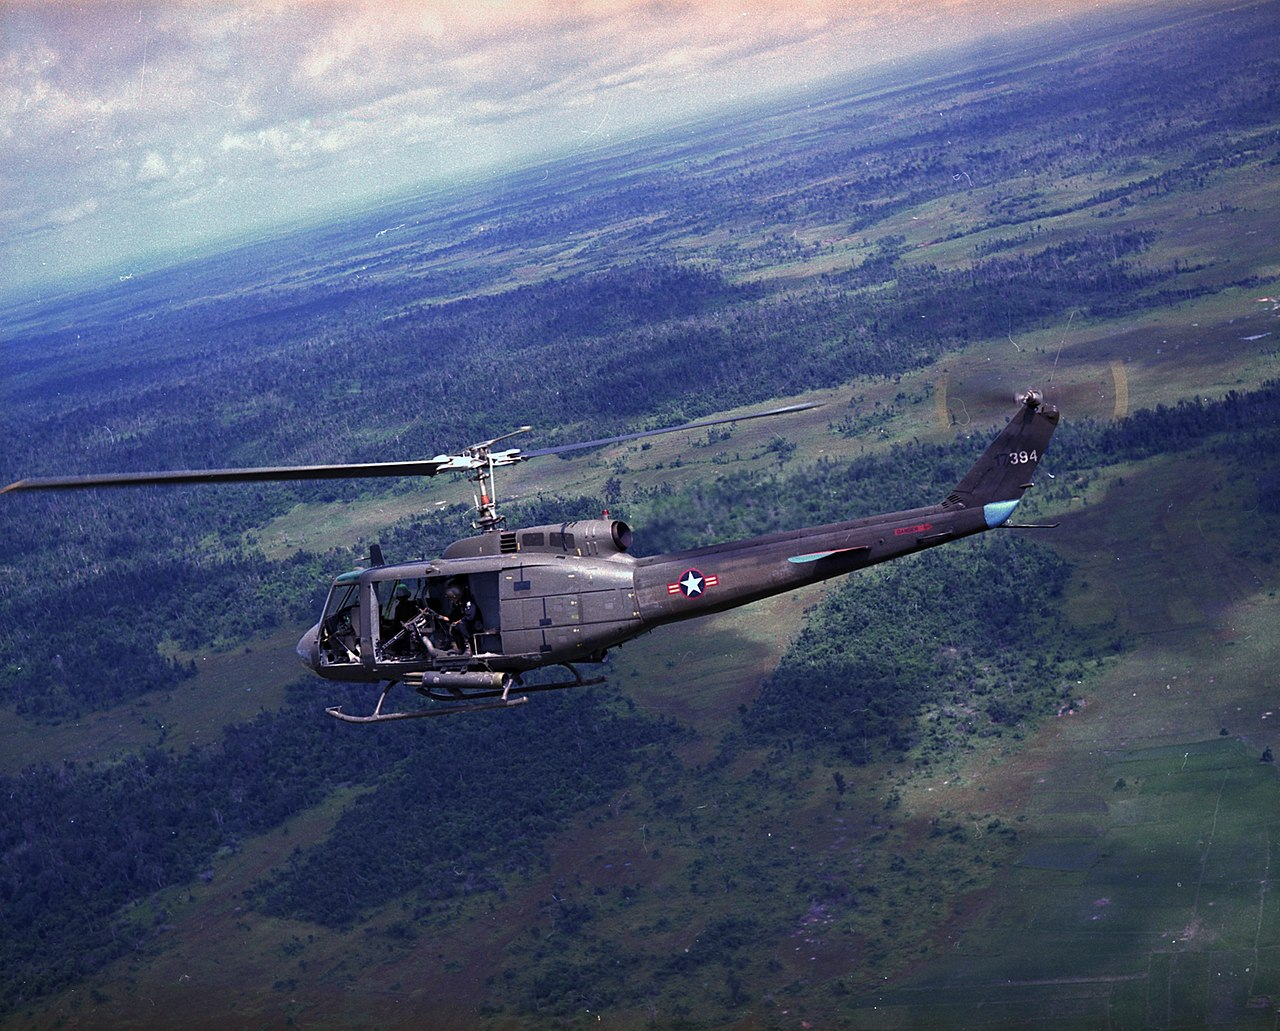 1280px-UH-1H_VNAF_in_flight_1971.jpg